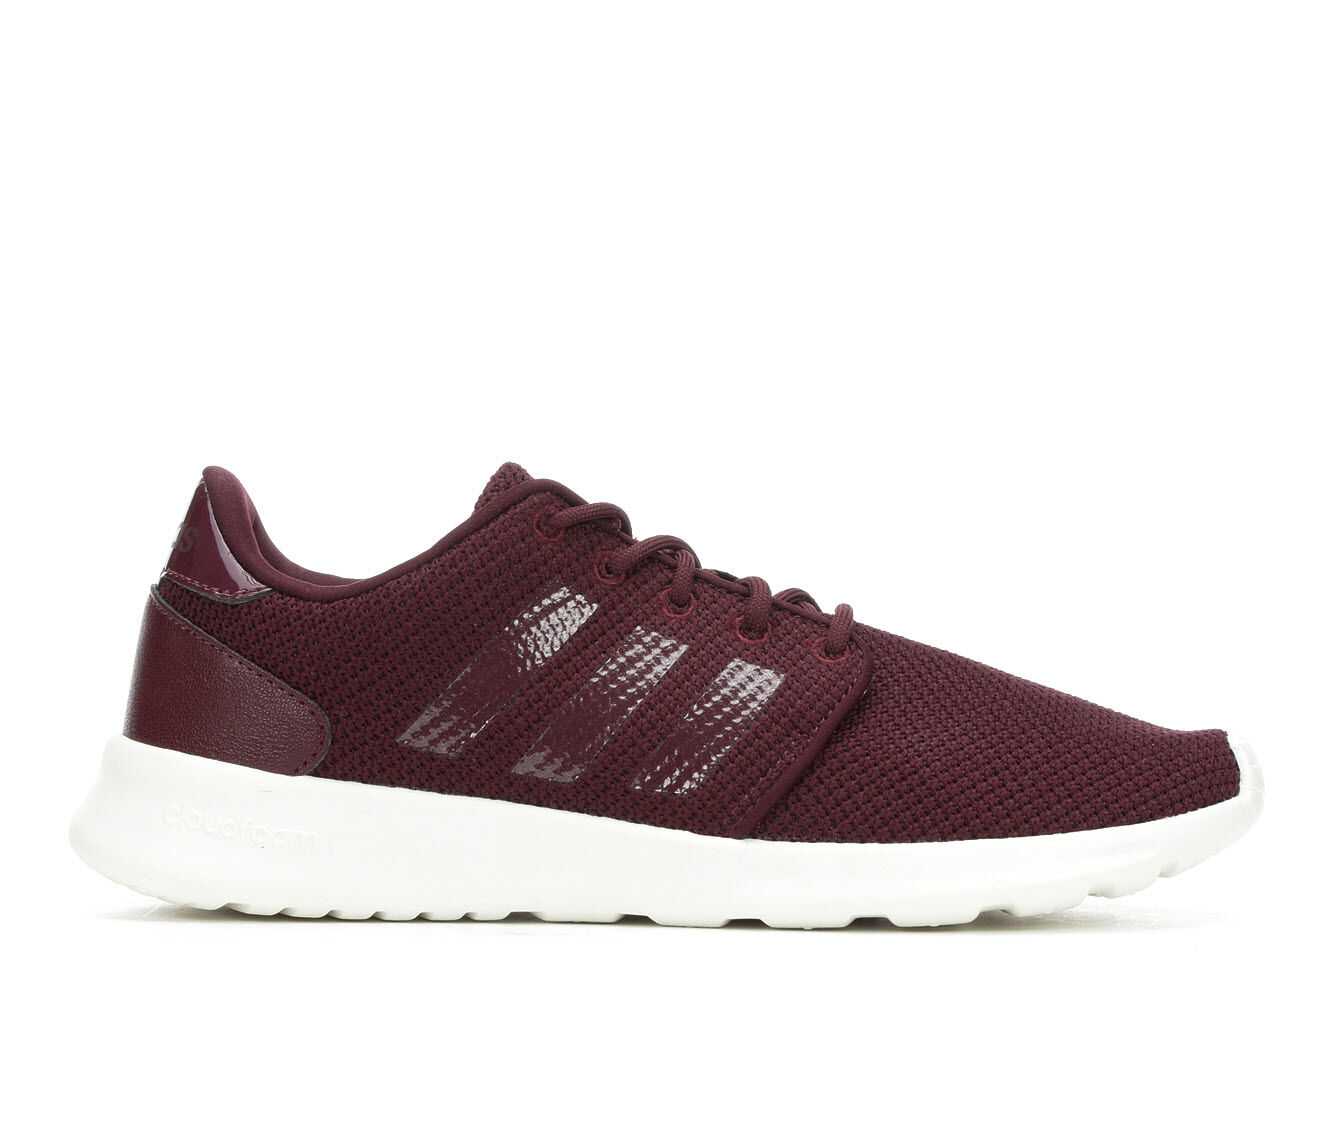 Price Down Women's Adidas Cloudfoam QT Racer Sneakers Maroon/White